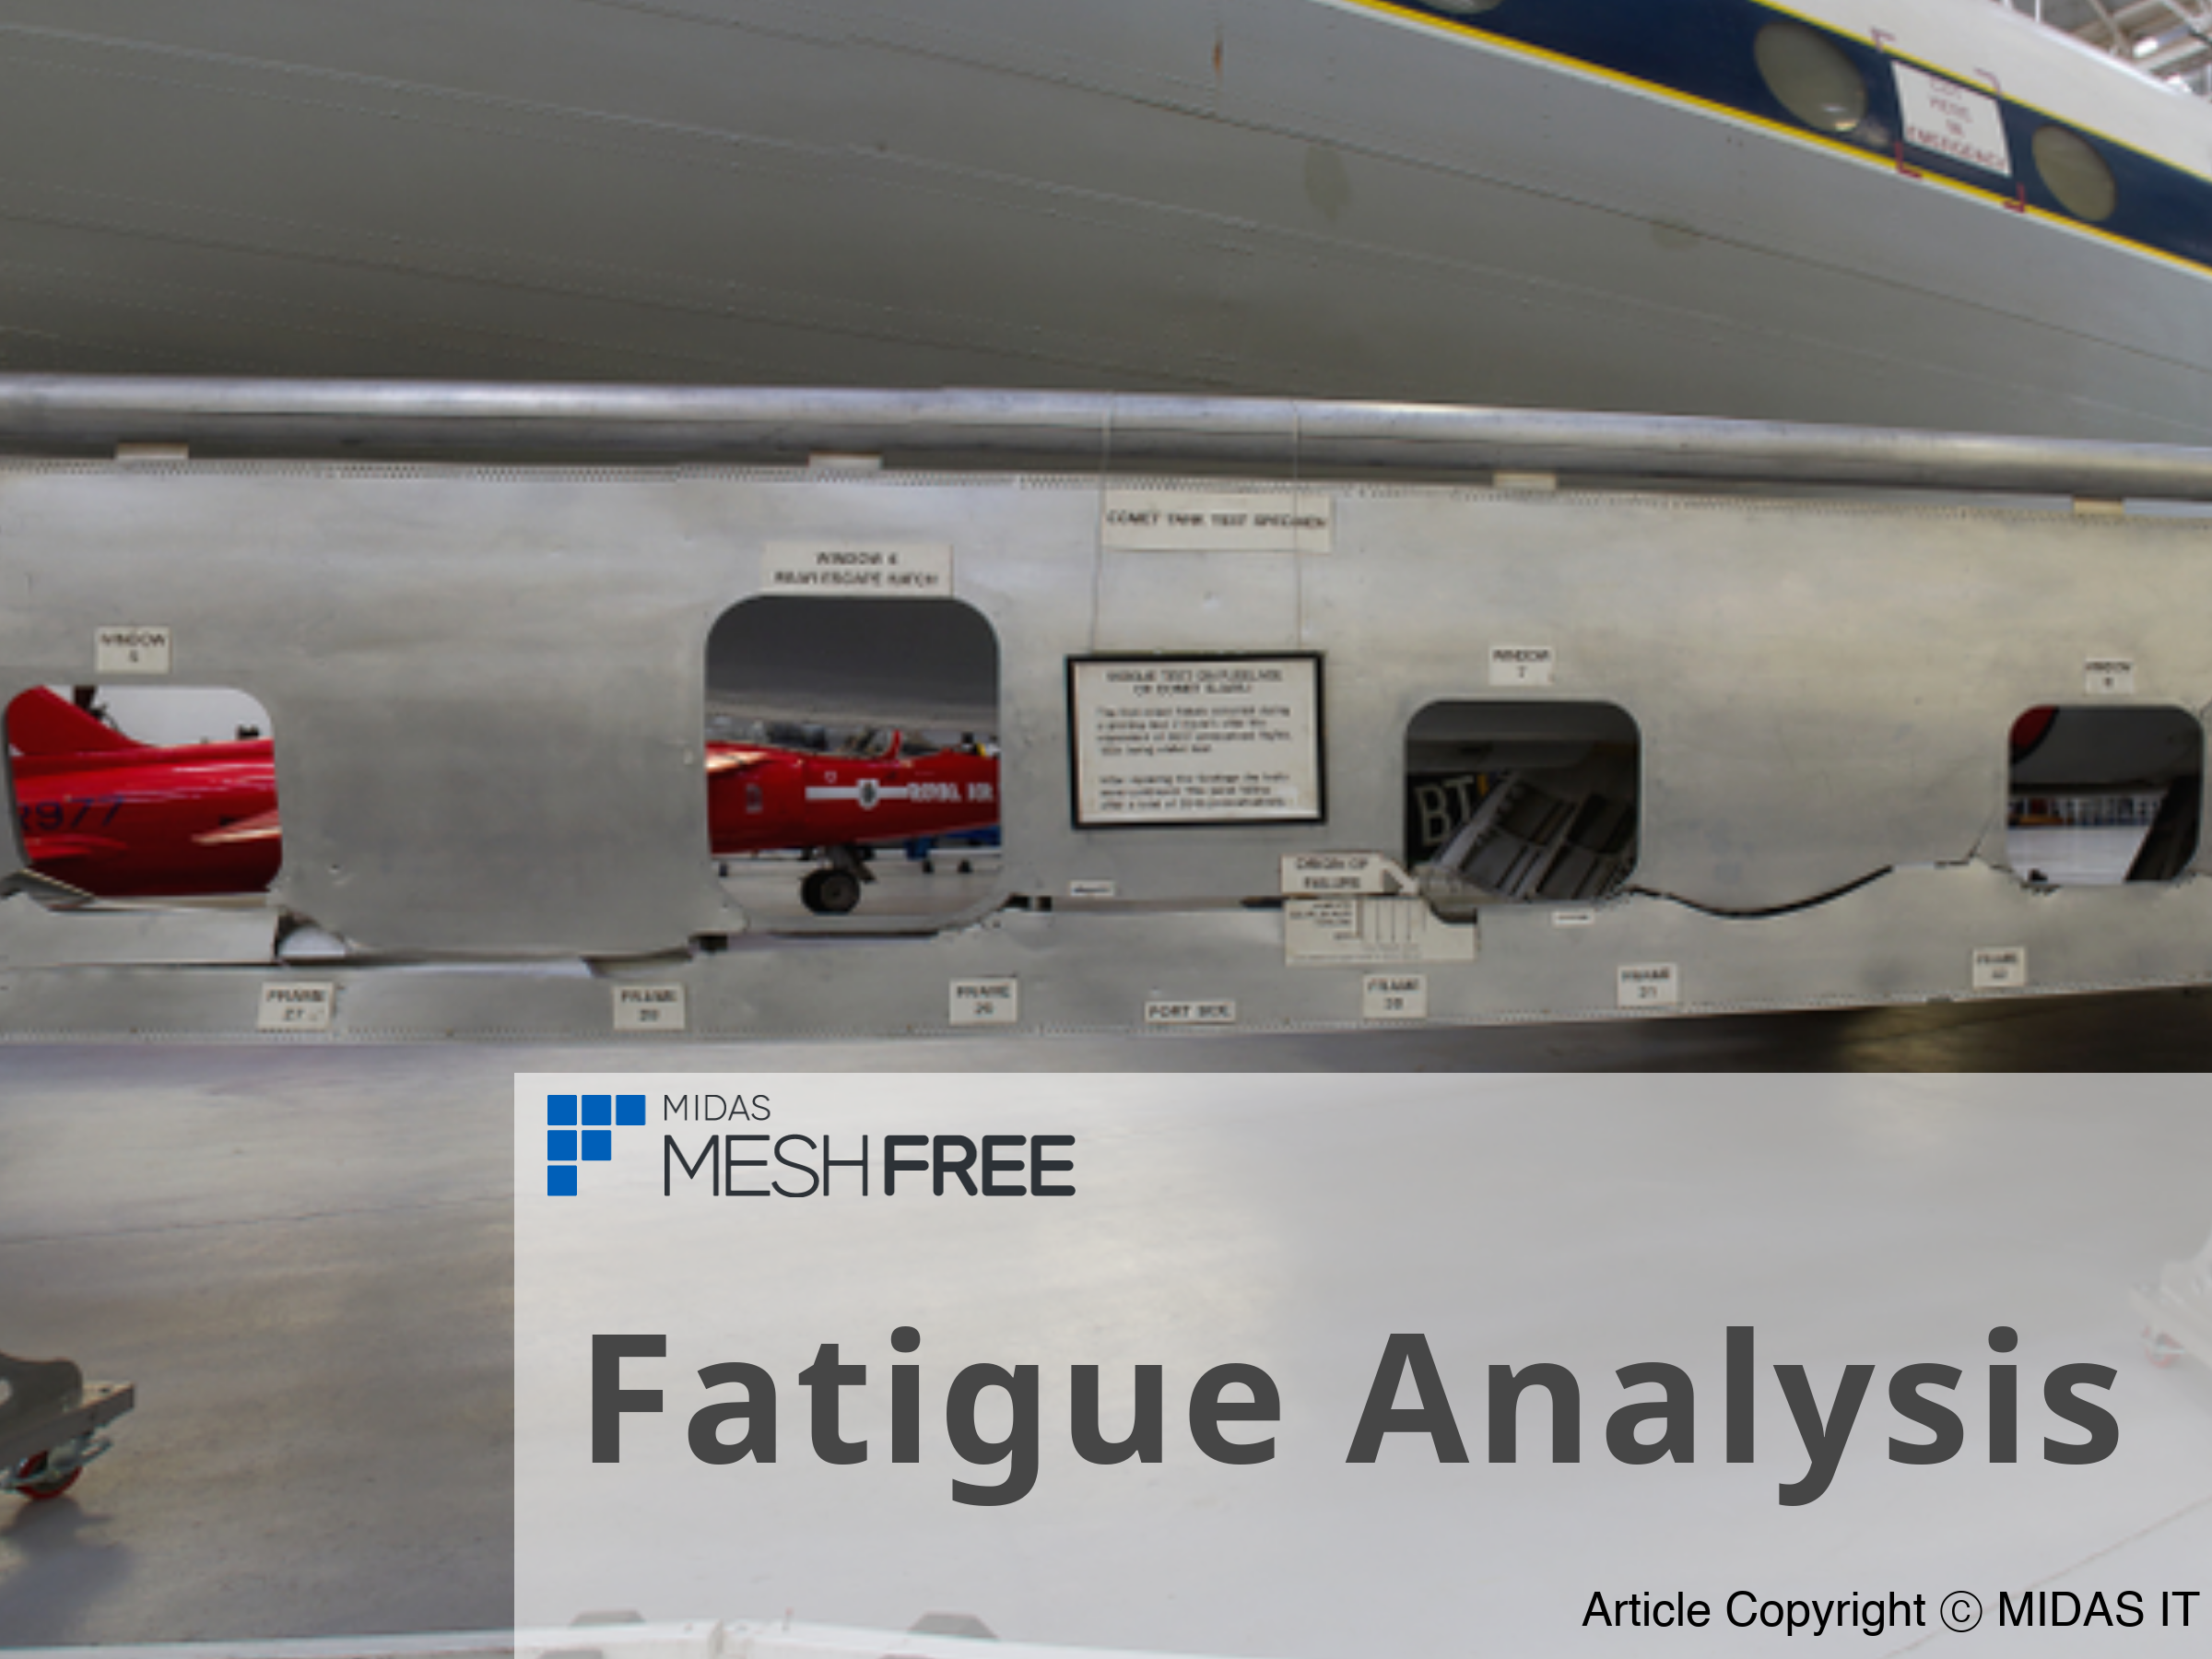 Fatigue Analysis (Infographic)